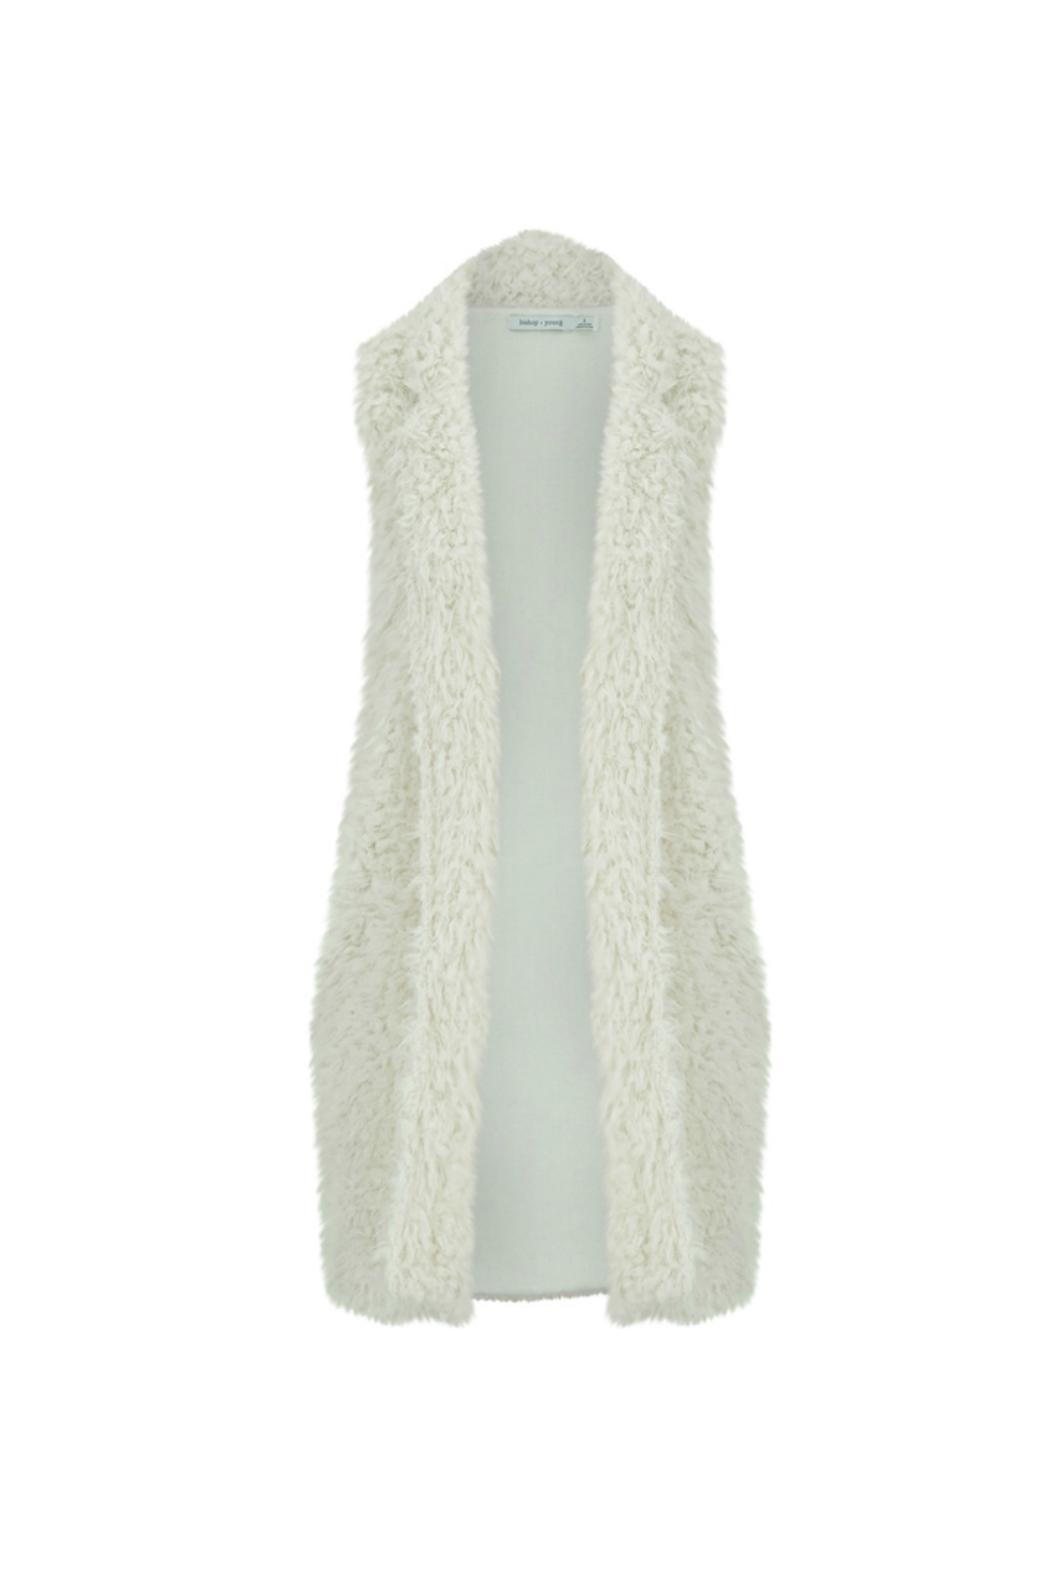 Bishop + Young Faux-Fur Fringe Vest - Main Image